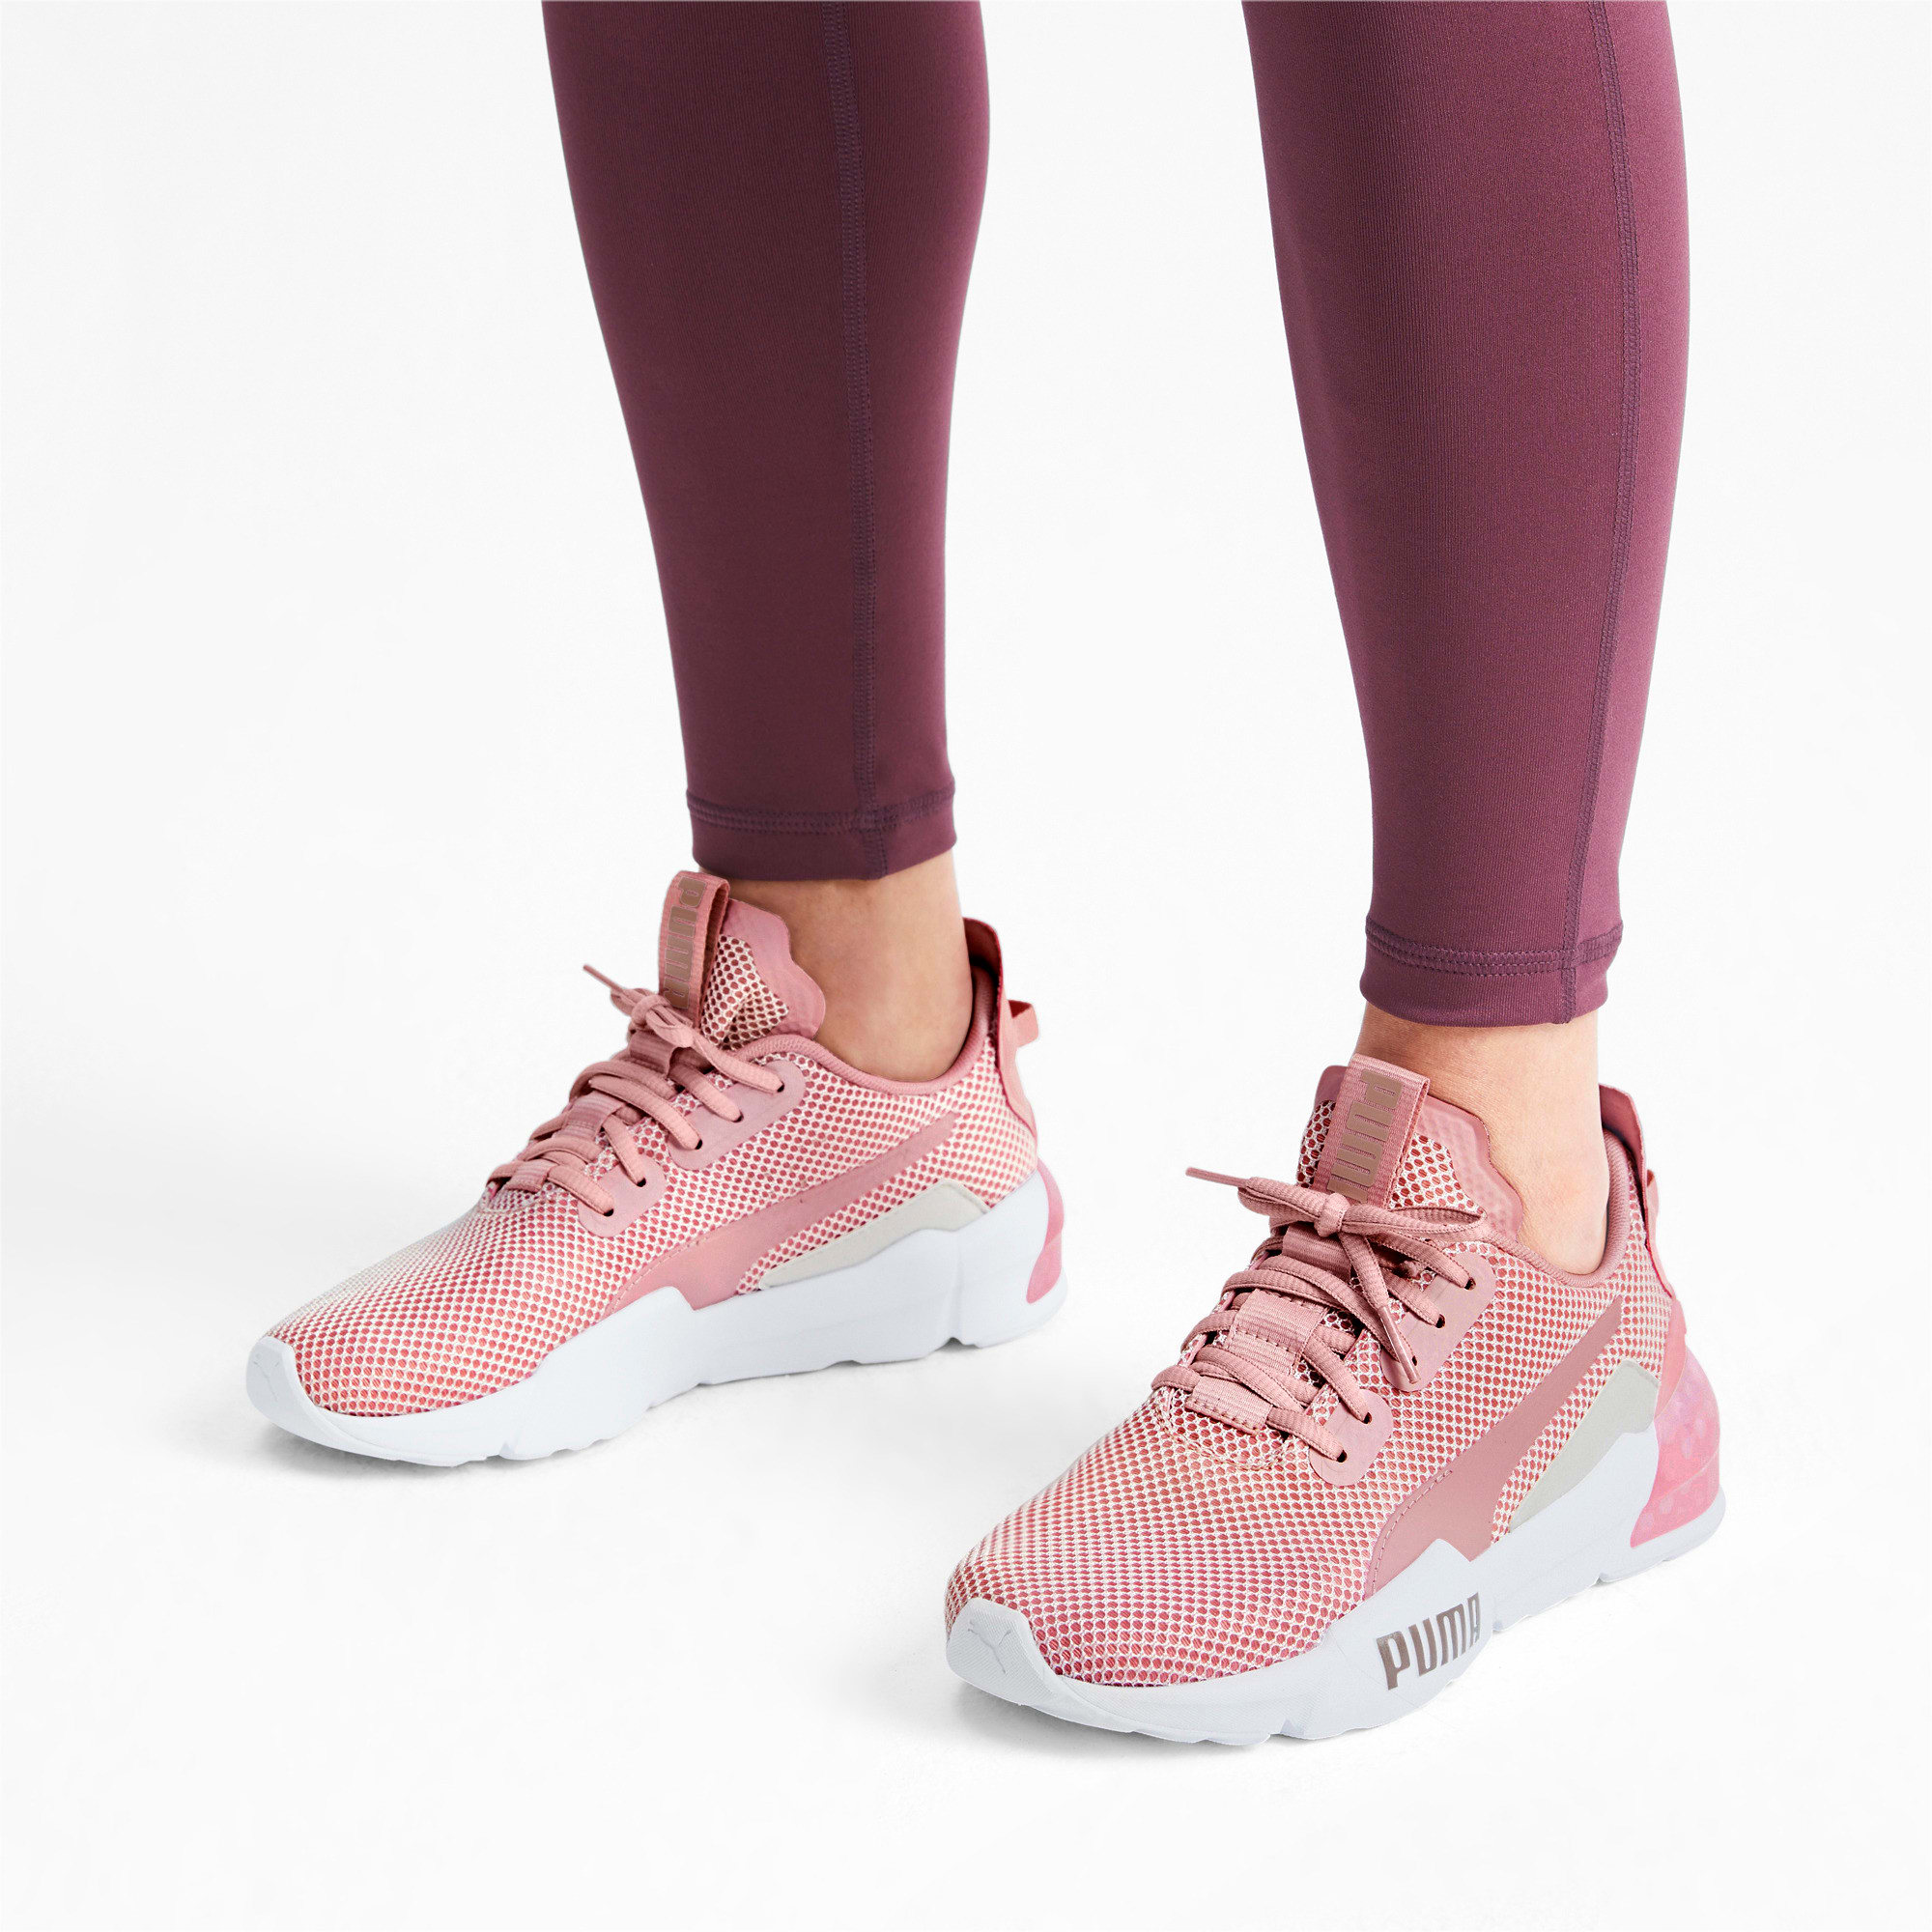 Thumbnail 2 of CELL Phase Women's Trainers, Bridal Rose-Pastel Parchment, medium-IND